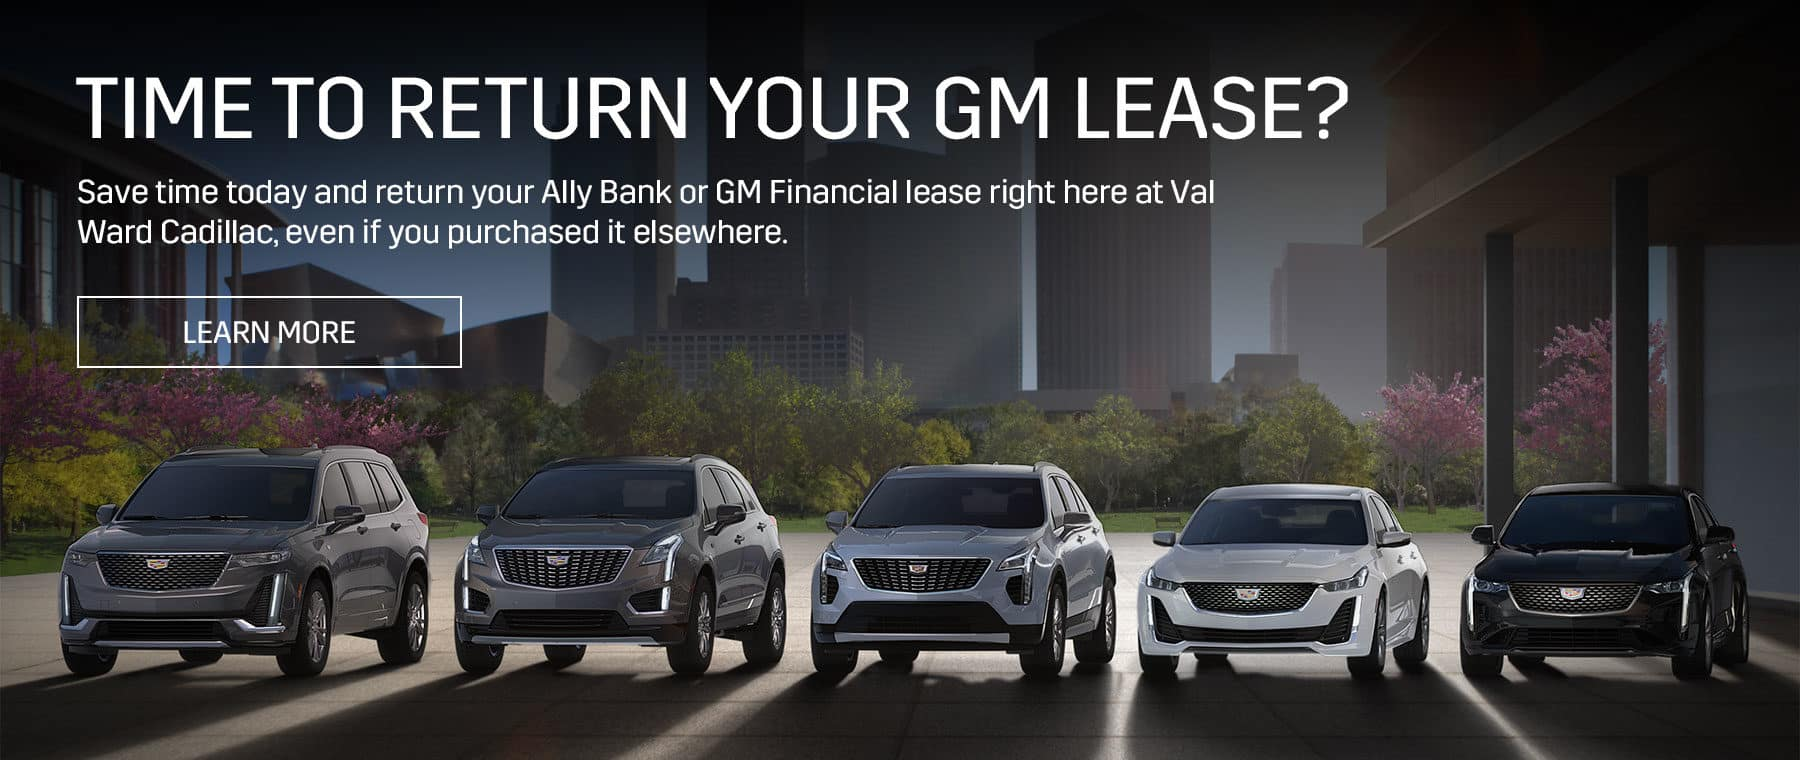 TIME TO RETURN YOUR GM LEASE? Save time today and return your Ally Bank or GM Financial lease right here at Val Ward Cadillac, even if you purchased it elsewhere.